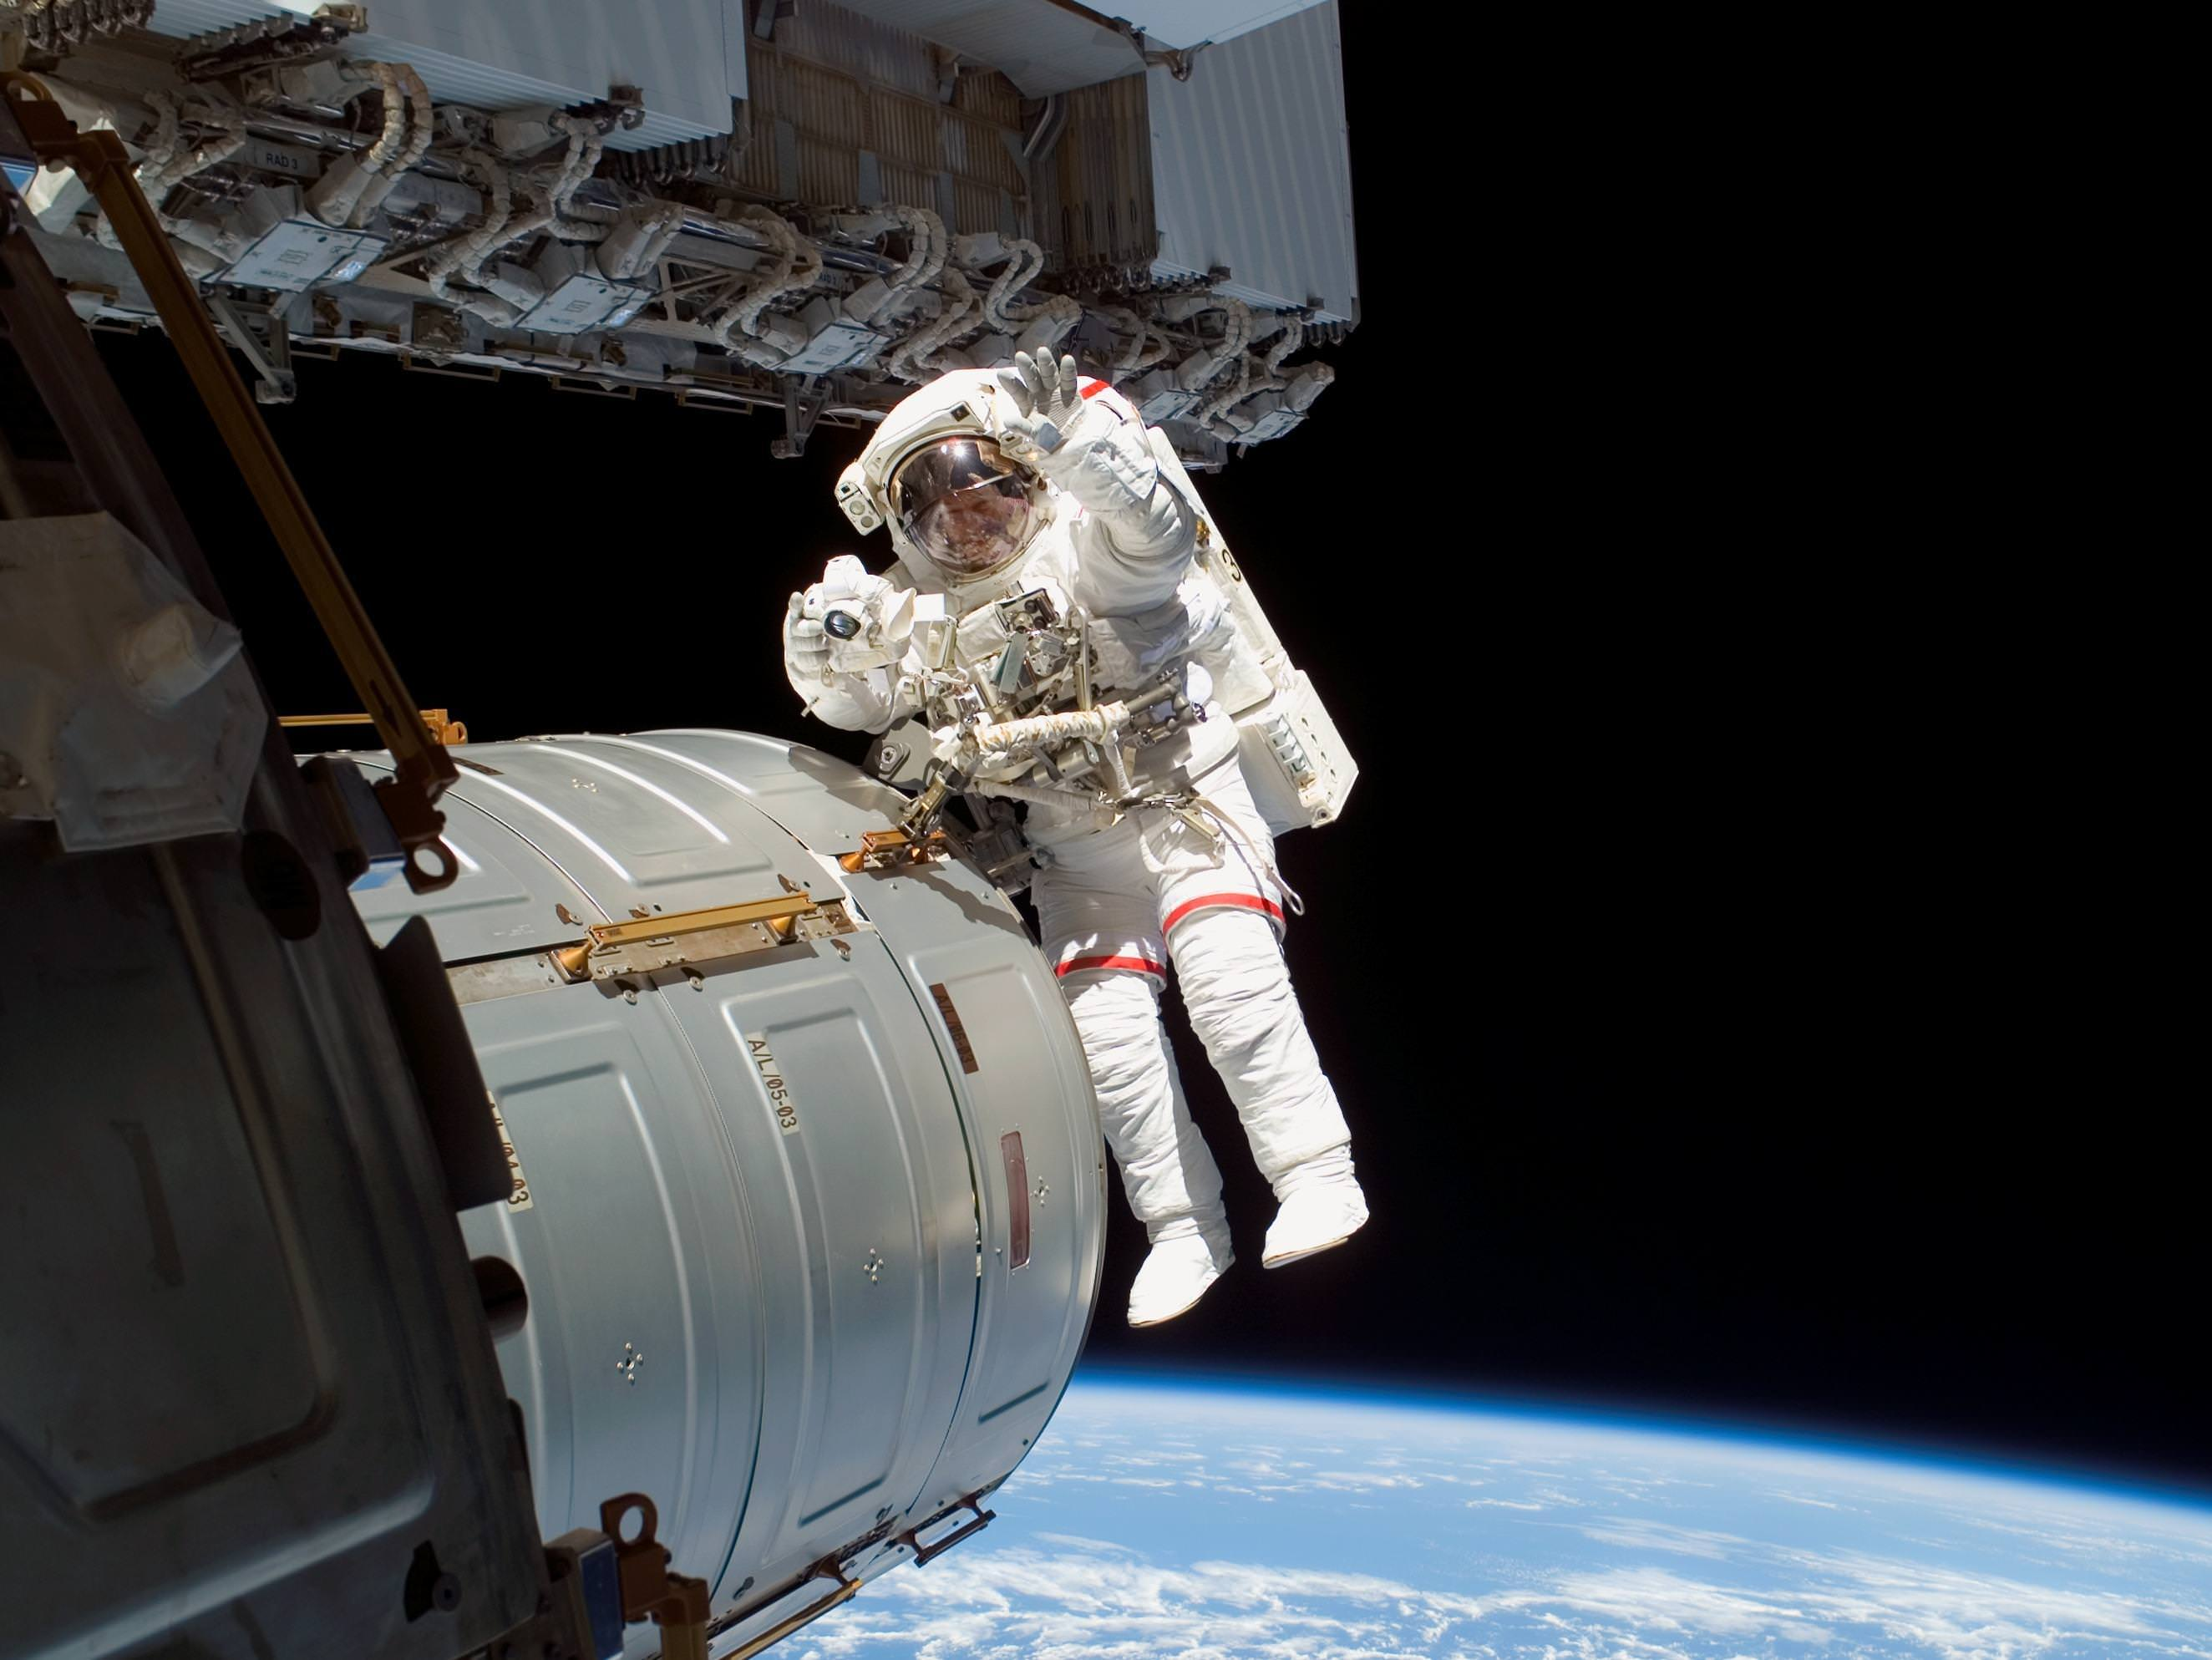 Why Can't We Design the Perfect Spacesuit? - Universe Today